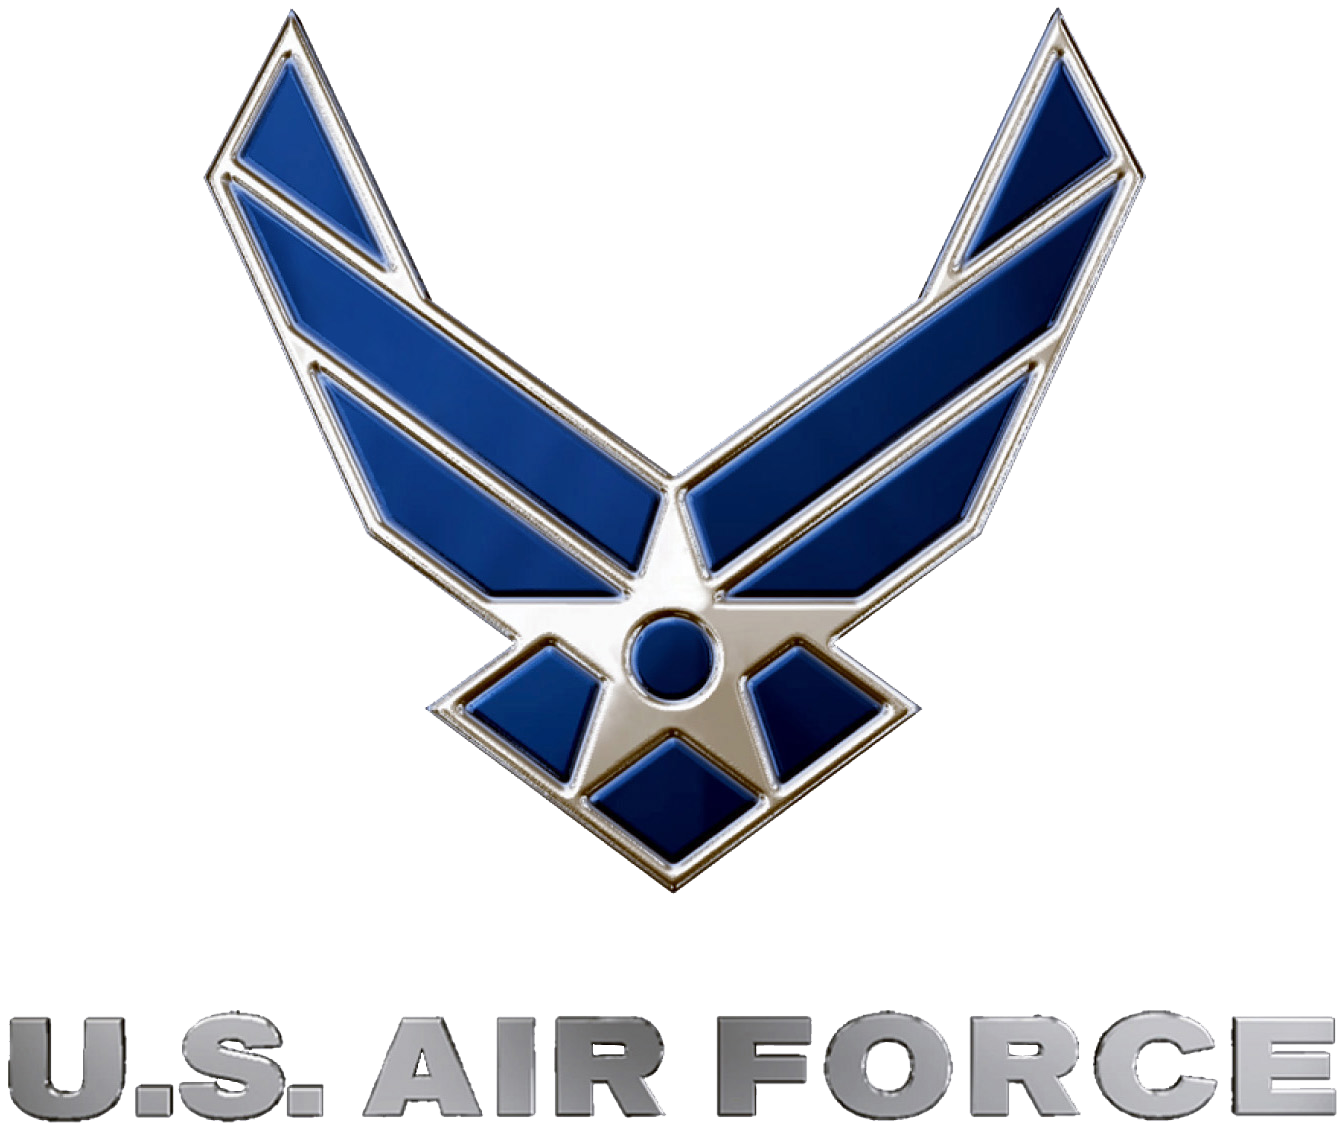 United states clipart air force. Symbol wikipedia us blue